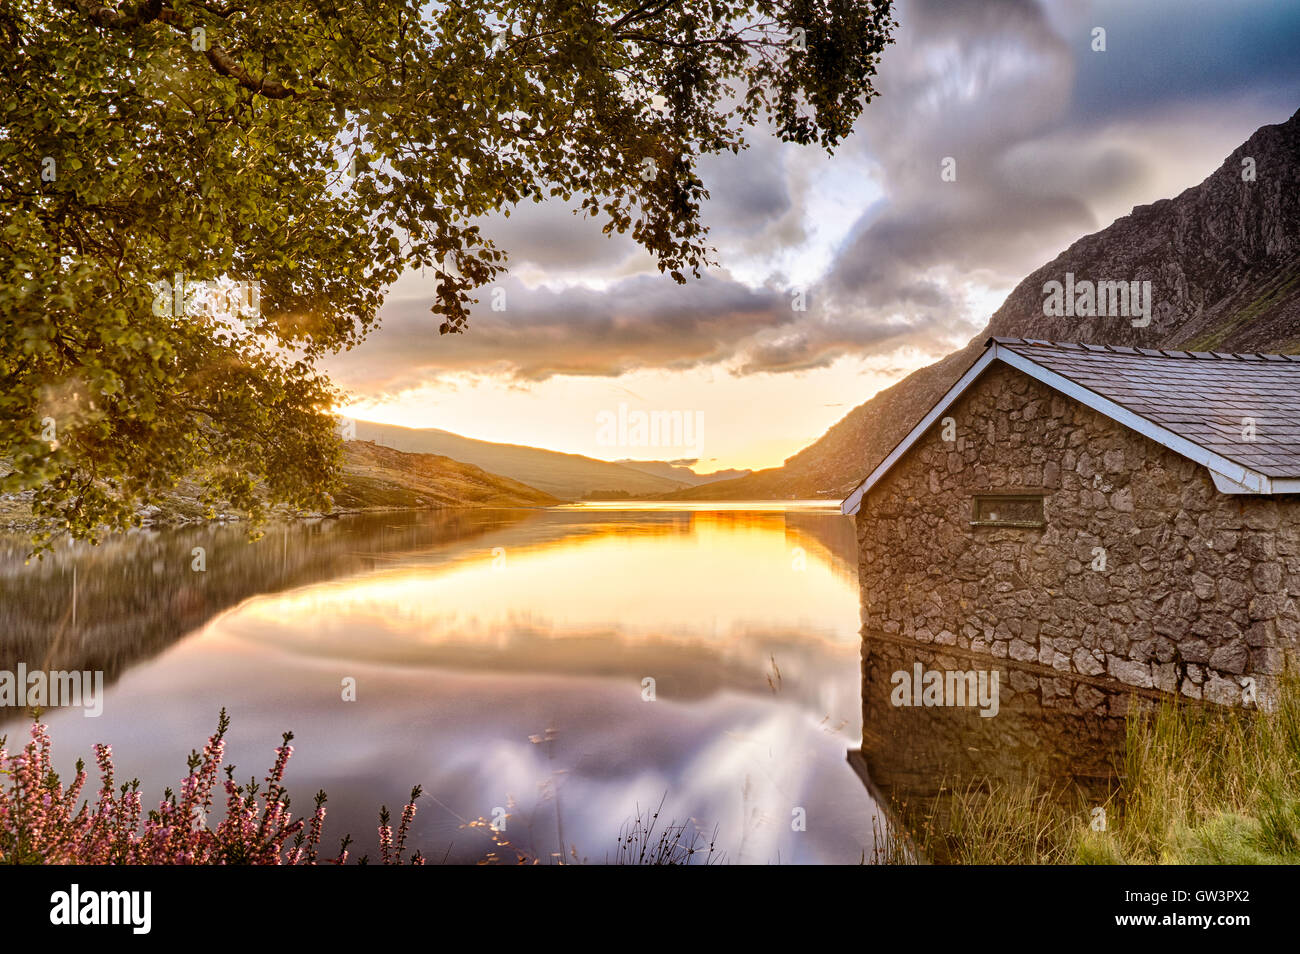 View of Llyn Ogwen Lake at sunrise with blu sky. House in the lake and tree. - Stock Image